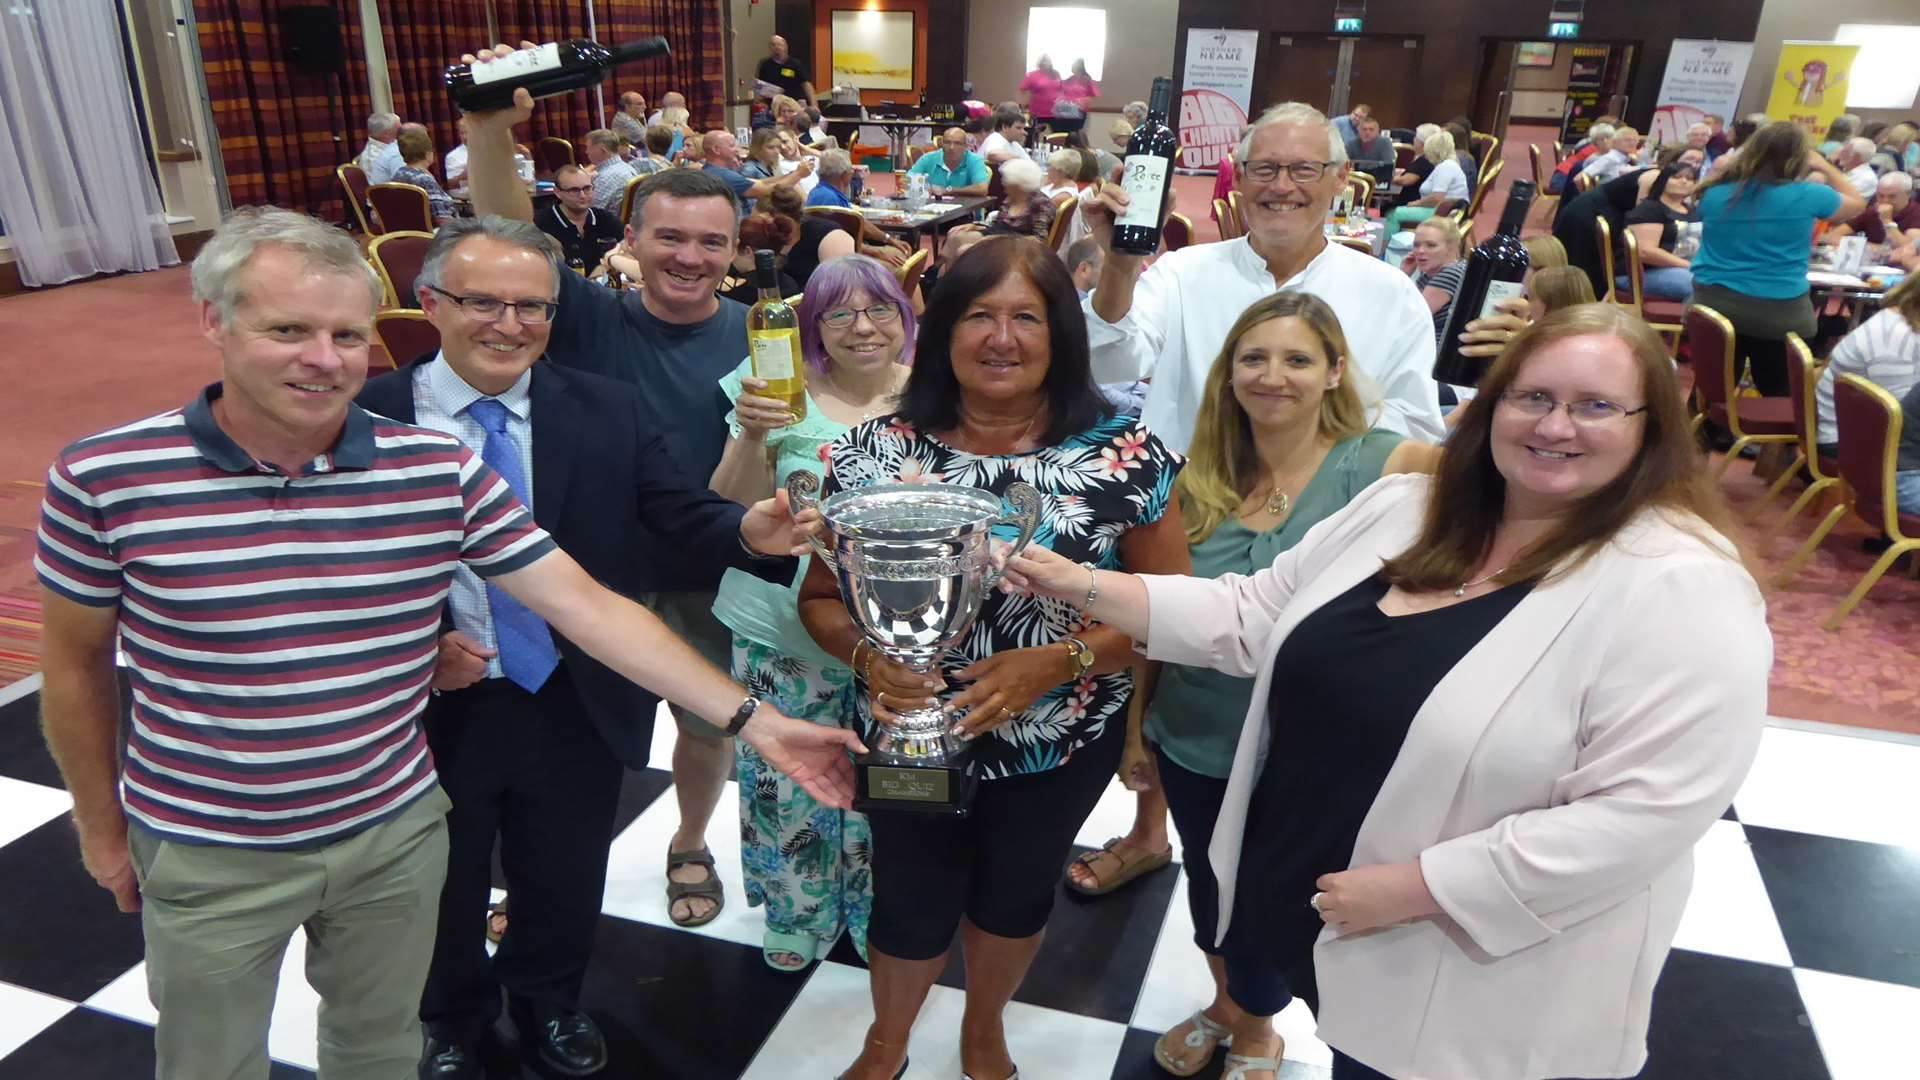 Moomins receive Ashford KM Big Charity Quiz trophy from David Fifield of Hallett and Co, Clive Perry of Specsavers and Rebecca Naylor of Ashford International Hotel.